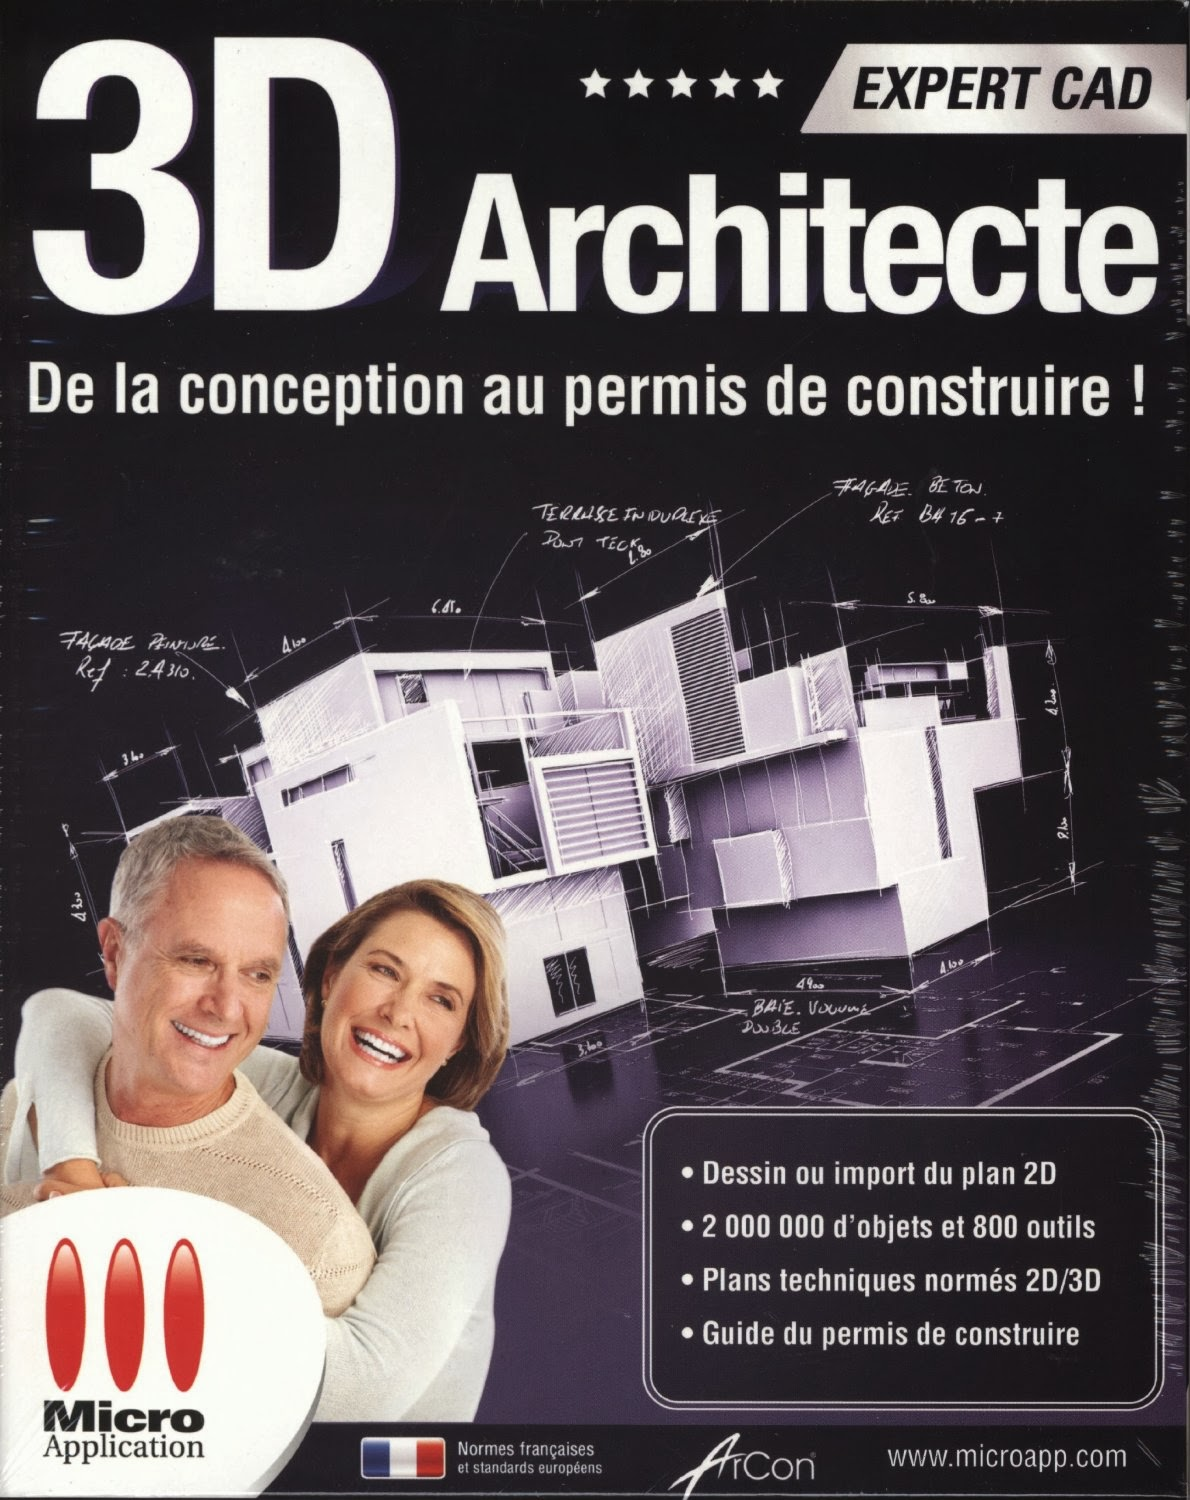 Telecharge architecte 3d expert cad v13 keygen crack for Architecte 3d avec crack